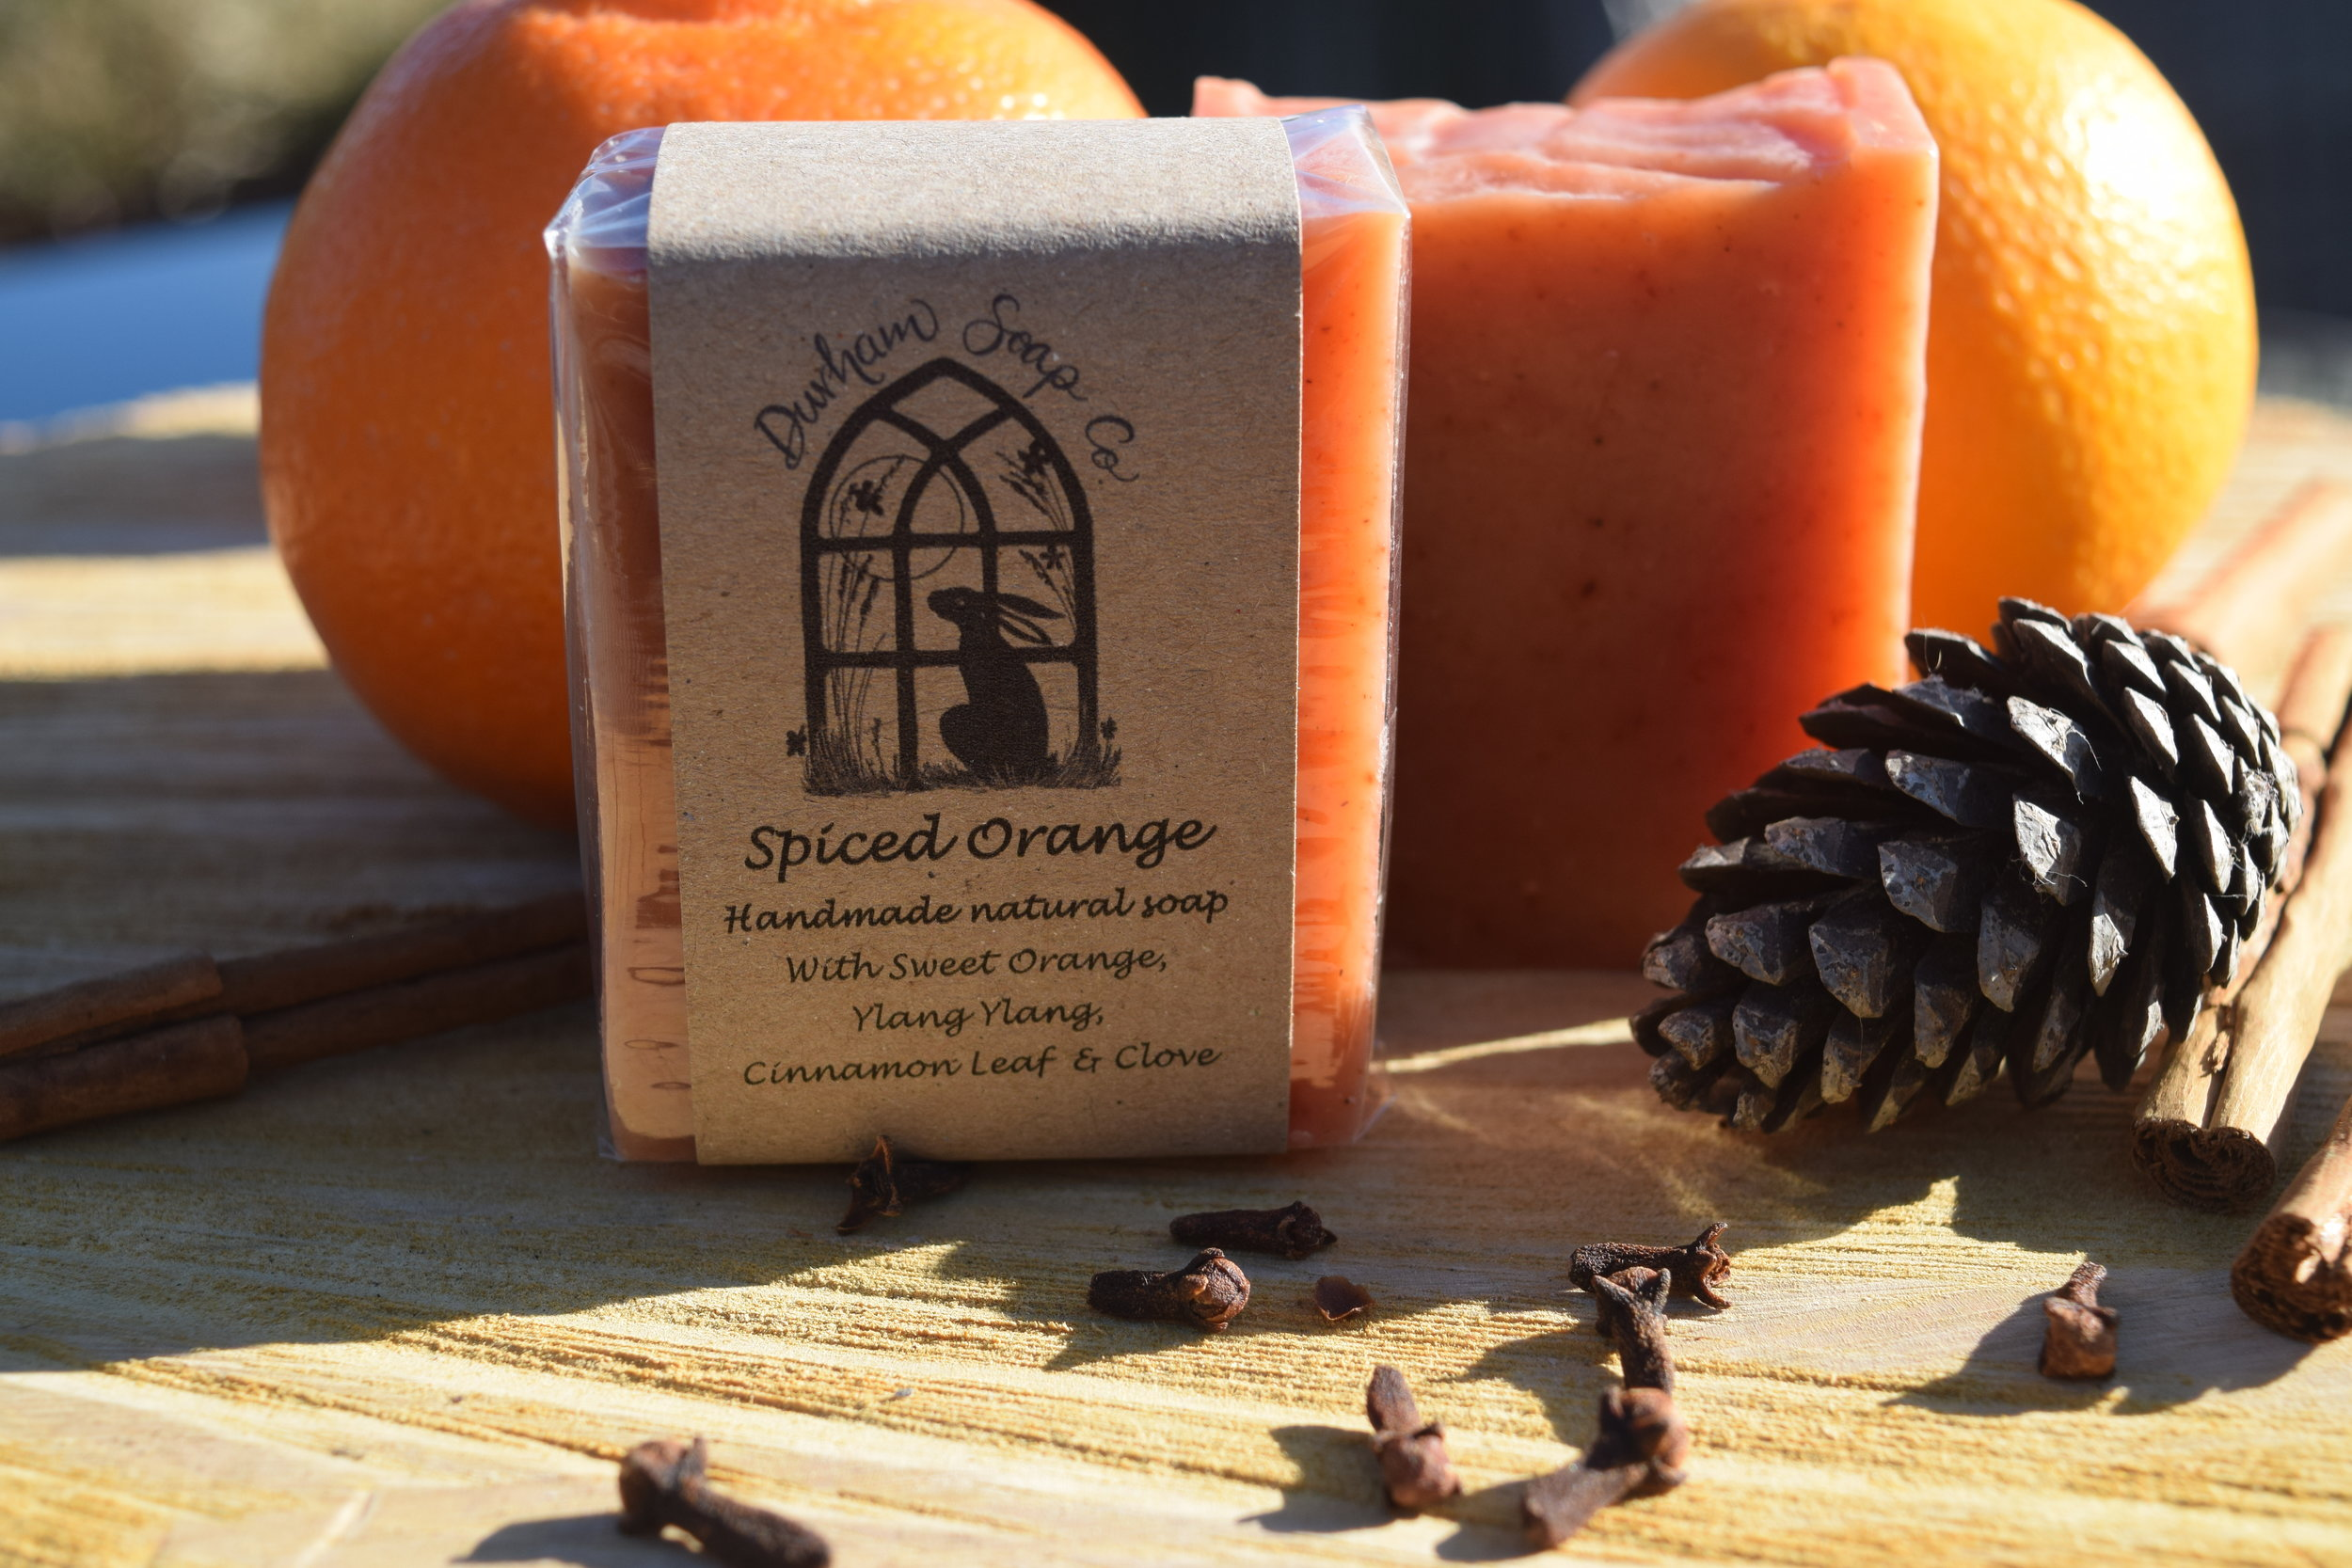 Spiced Orange - Natural soap, handmade with our blend of pure plant oils, enriched with moisturising shea butter, cocoa butter and castor oil for a rich and creamy lather. Our soap is fragranced with a blend of sweet orange, cinnamon, clove and ylang ylang essential oils to evoke the warming scents of the kitchen and fireside over the festive season.Ingredients: Olive oil, coconut oil, sunflower oil, shea butter, cocoa butter, water, castor oil, sweet orange oil, paprika, ylang ylang oil, cinnamon oil, clove bud oil, Vitamin E, benzyl benzoate*, benzyl salicylate*, eugenol*, farnesol*, limonene*, linalool*, * = occurs naturally in essential oils.Net weight: 100 g